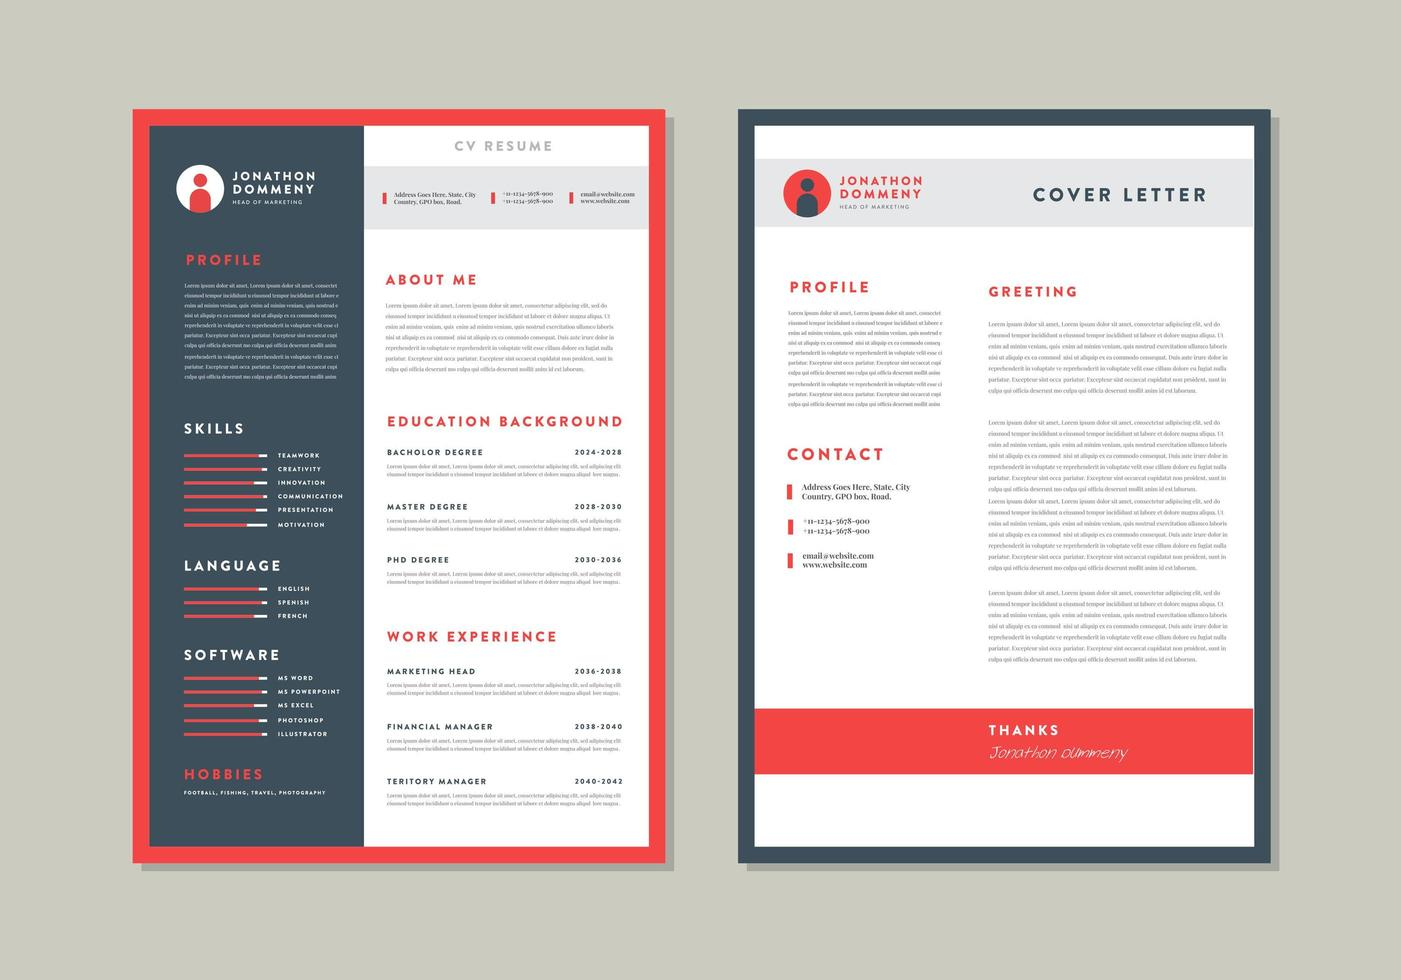 Cv Resume Template Design Download Free Vectors Clipart